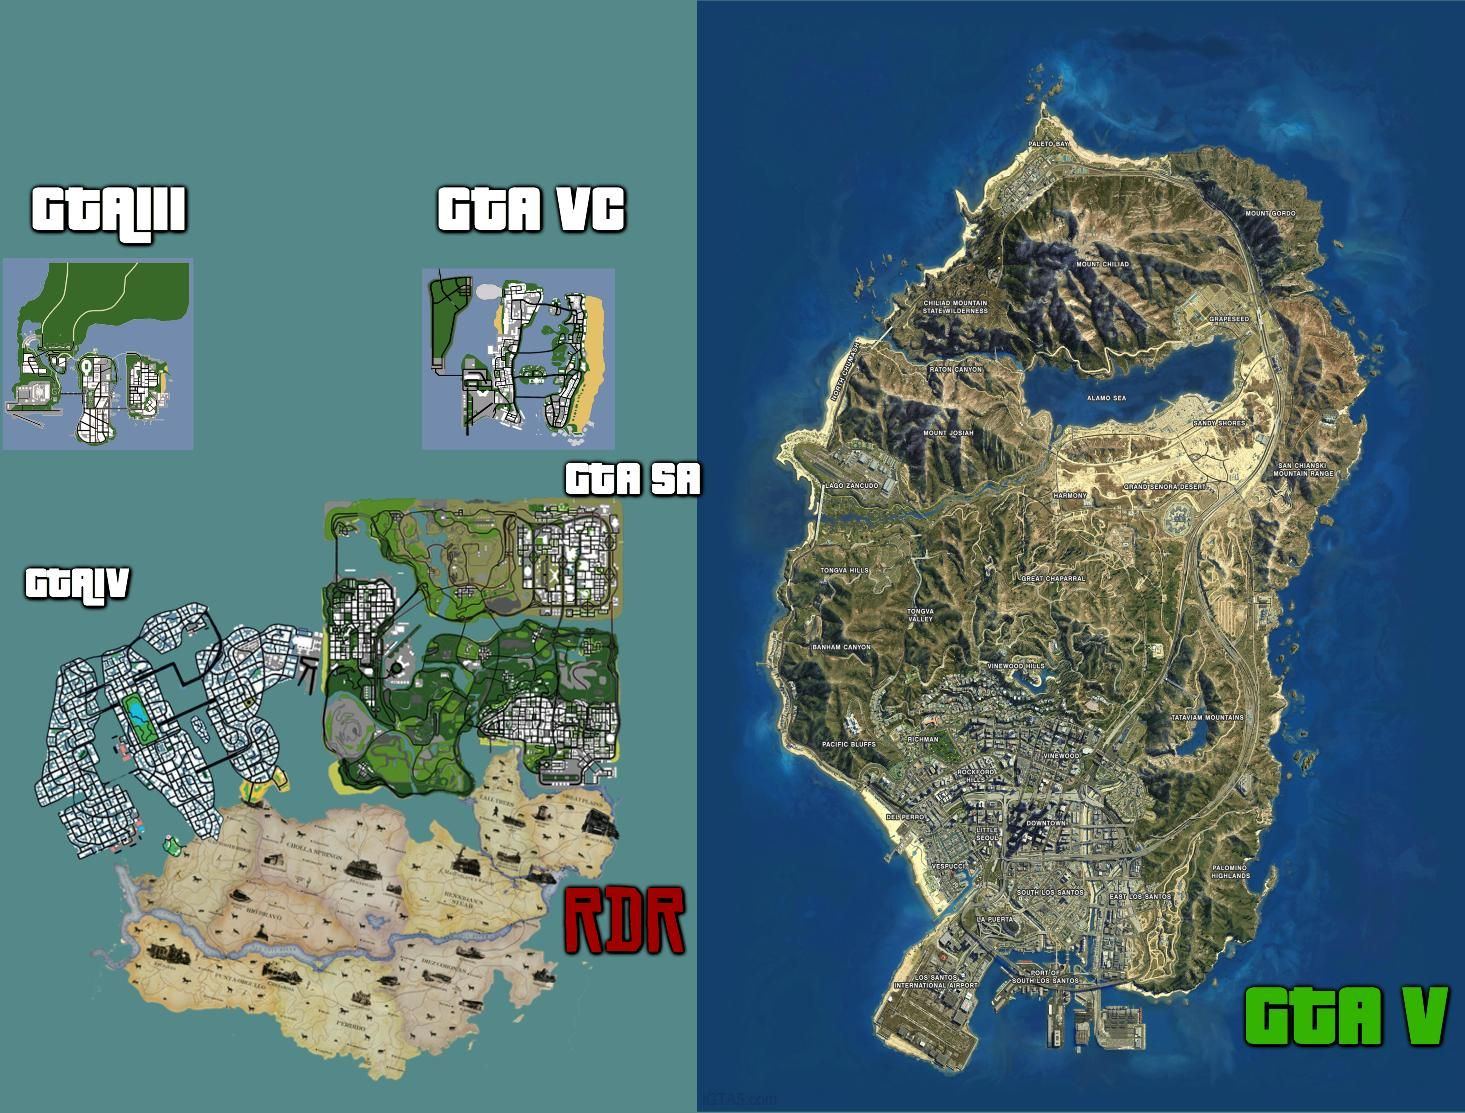 Best Grand Theft Auto Images On Pinterest Grand Theft - Map of us reddit user